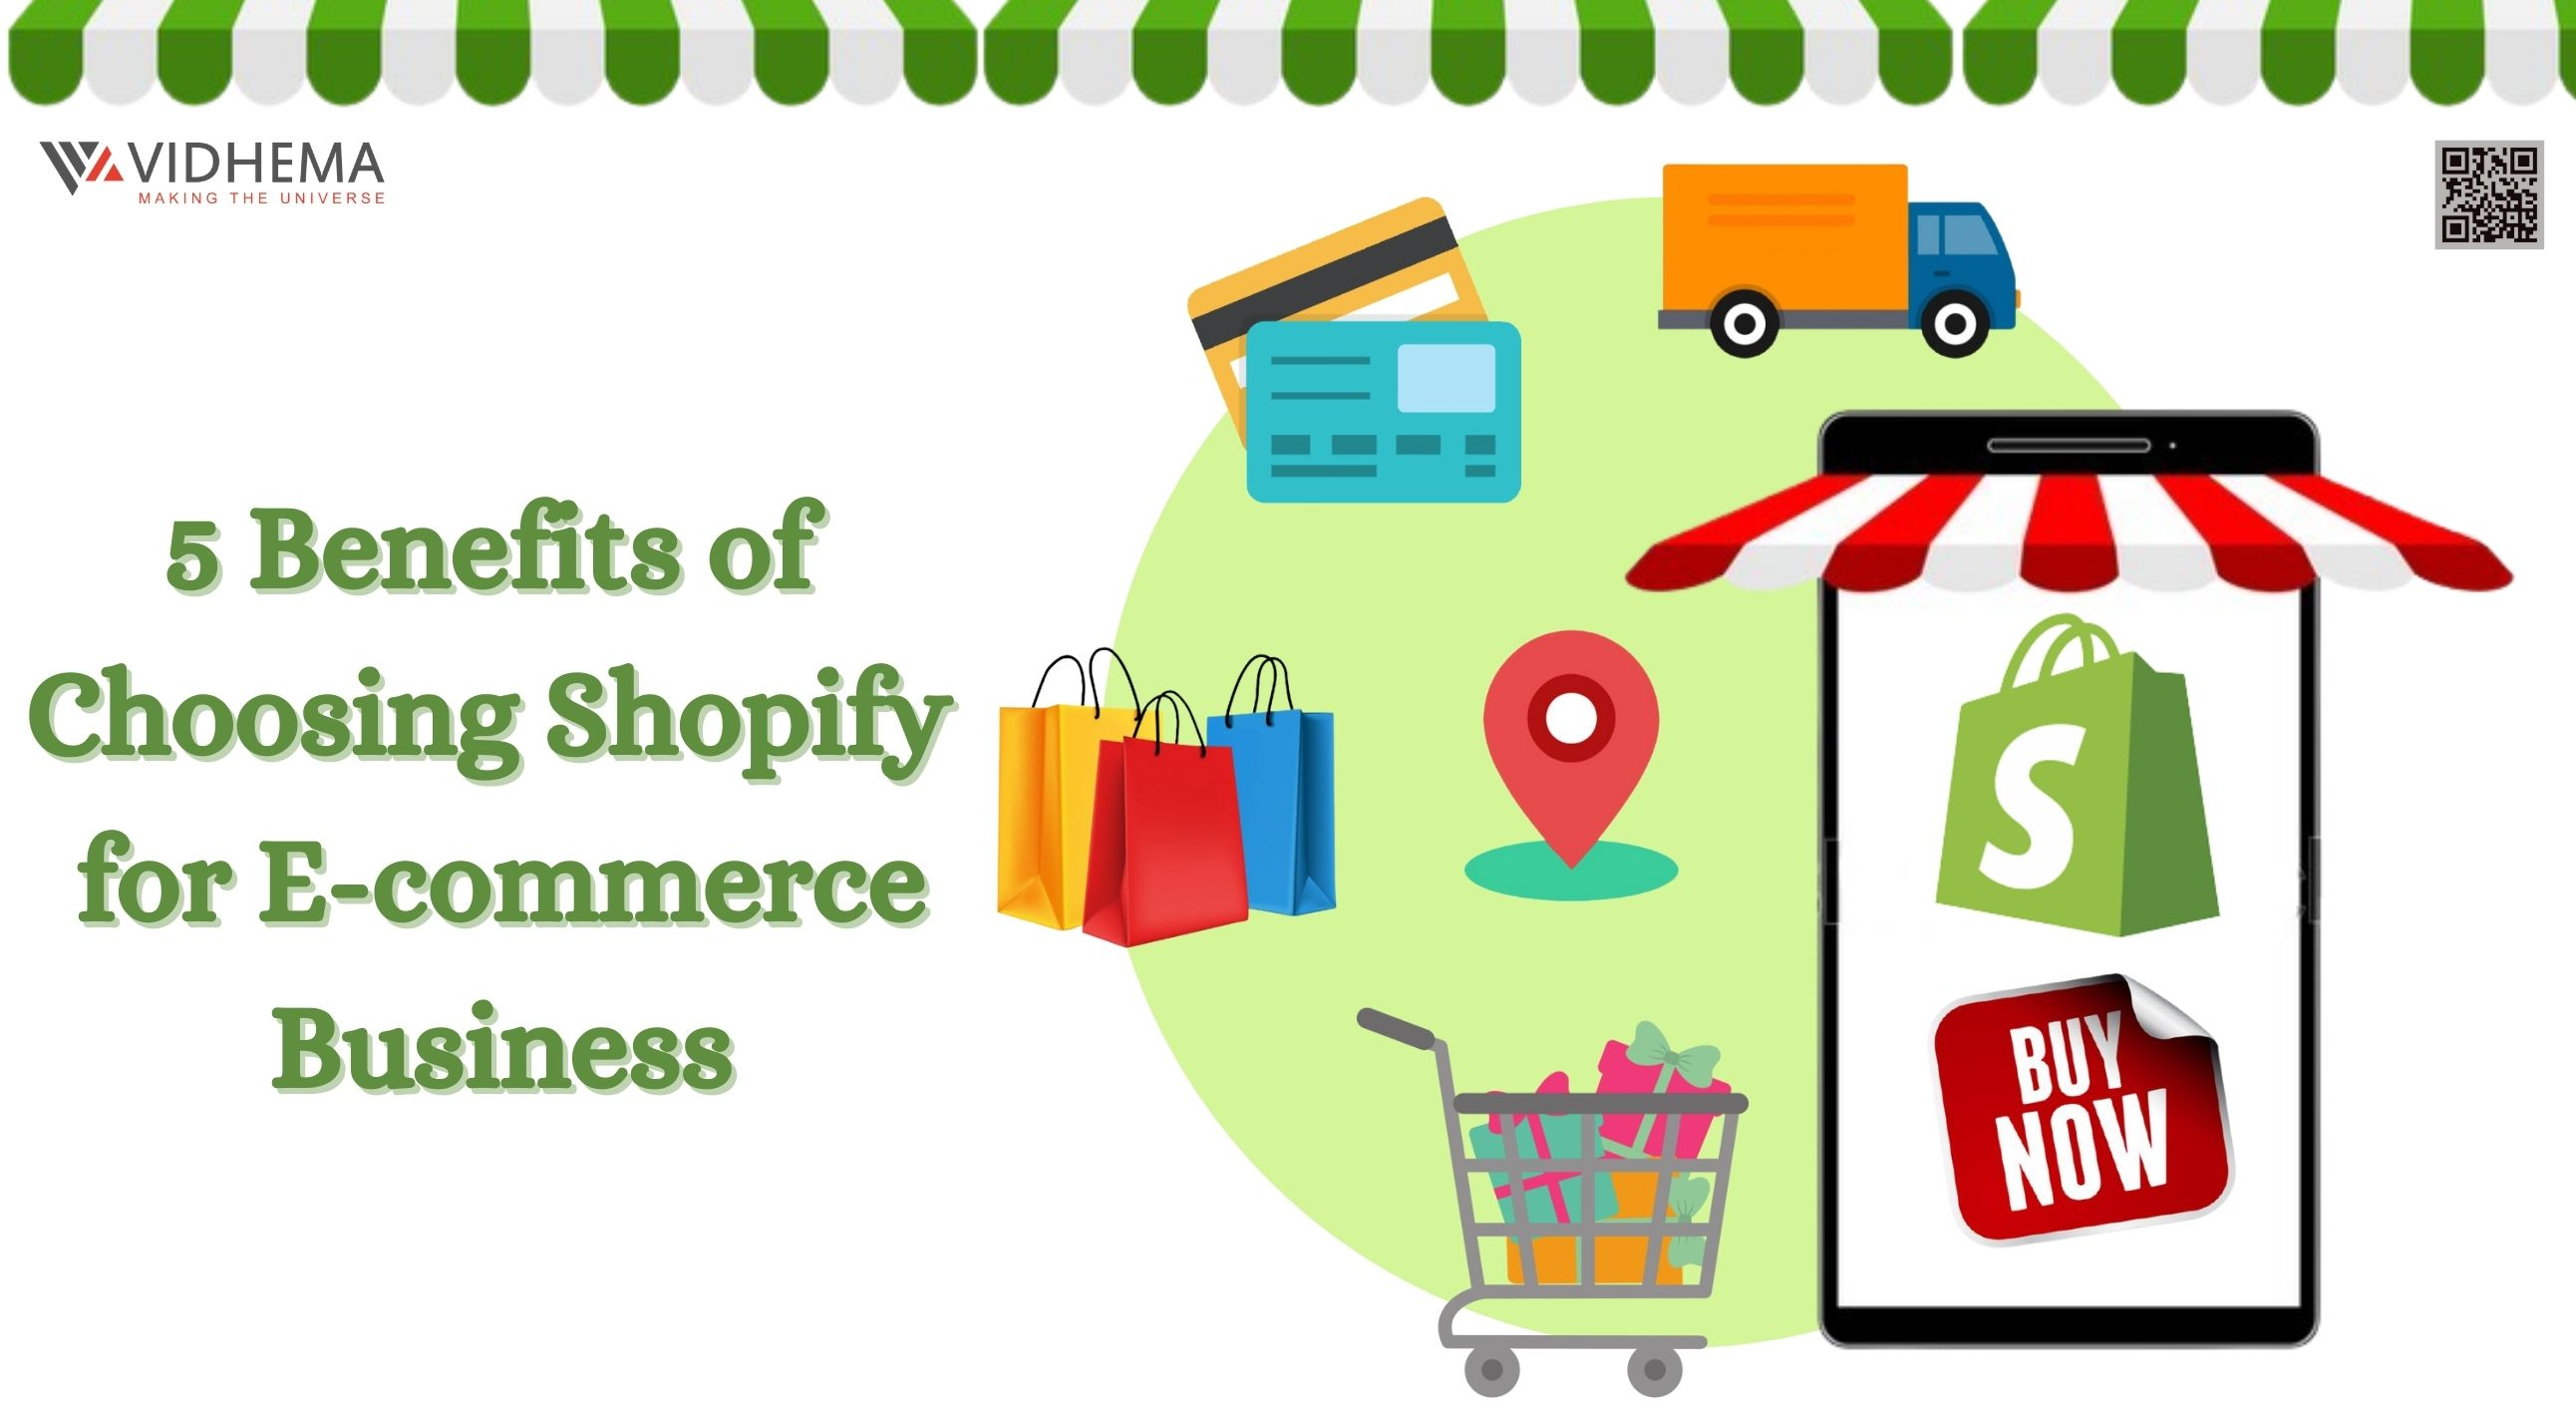 5 Benefits of Choosing Shopify for E-commerce Business